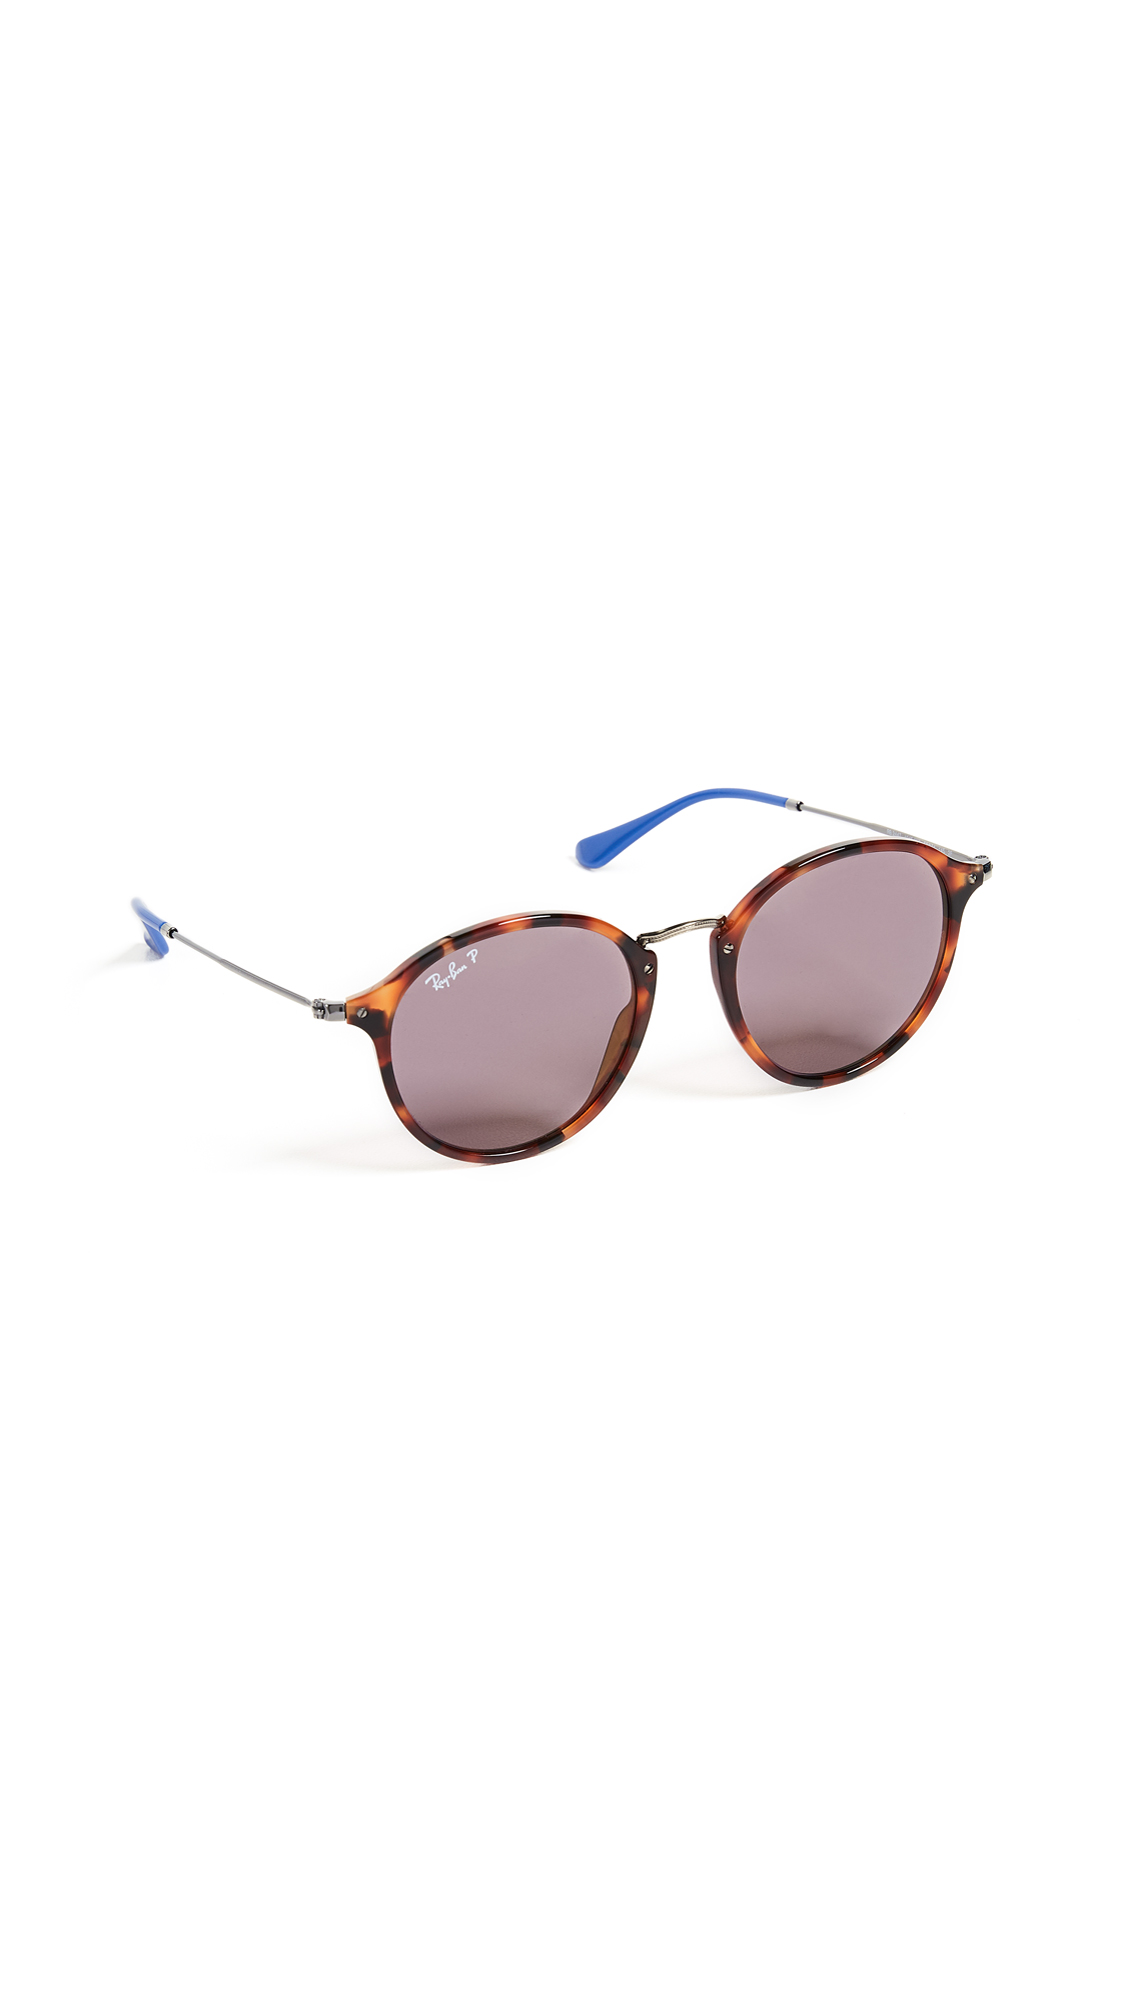 POLAR ROUND SUNGLASSES